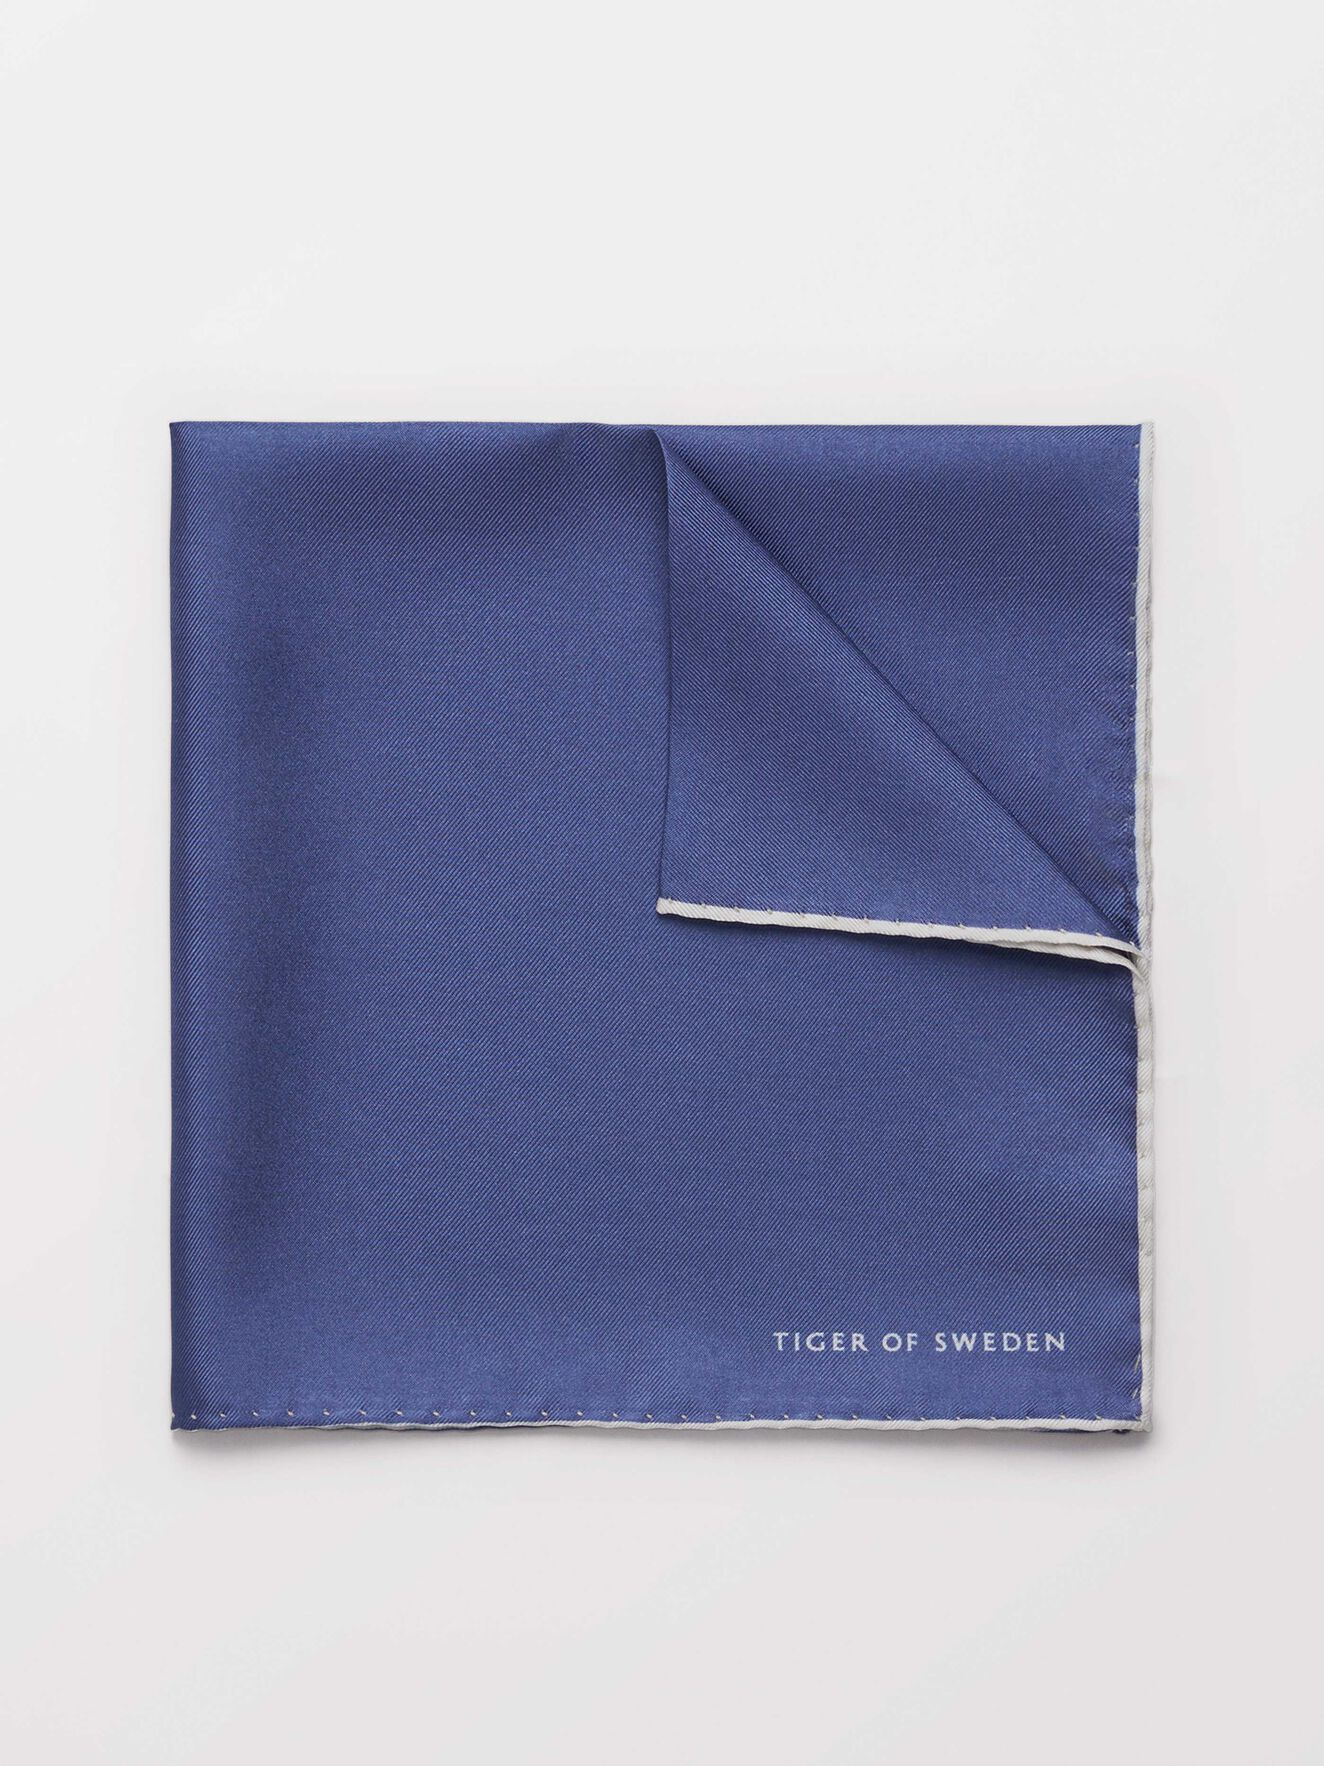 Penche Handkerchief in Soft blue from Tiger of Sweden